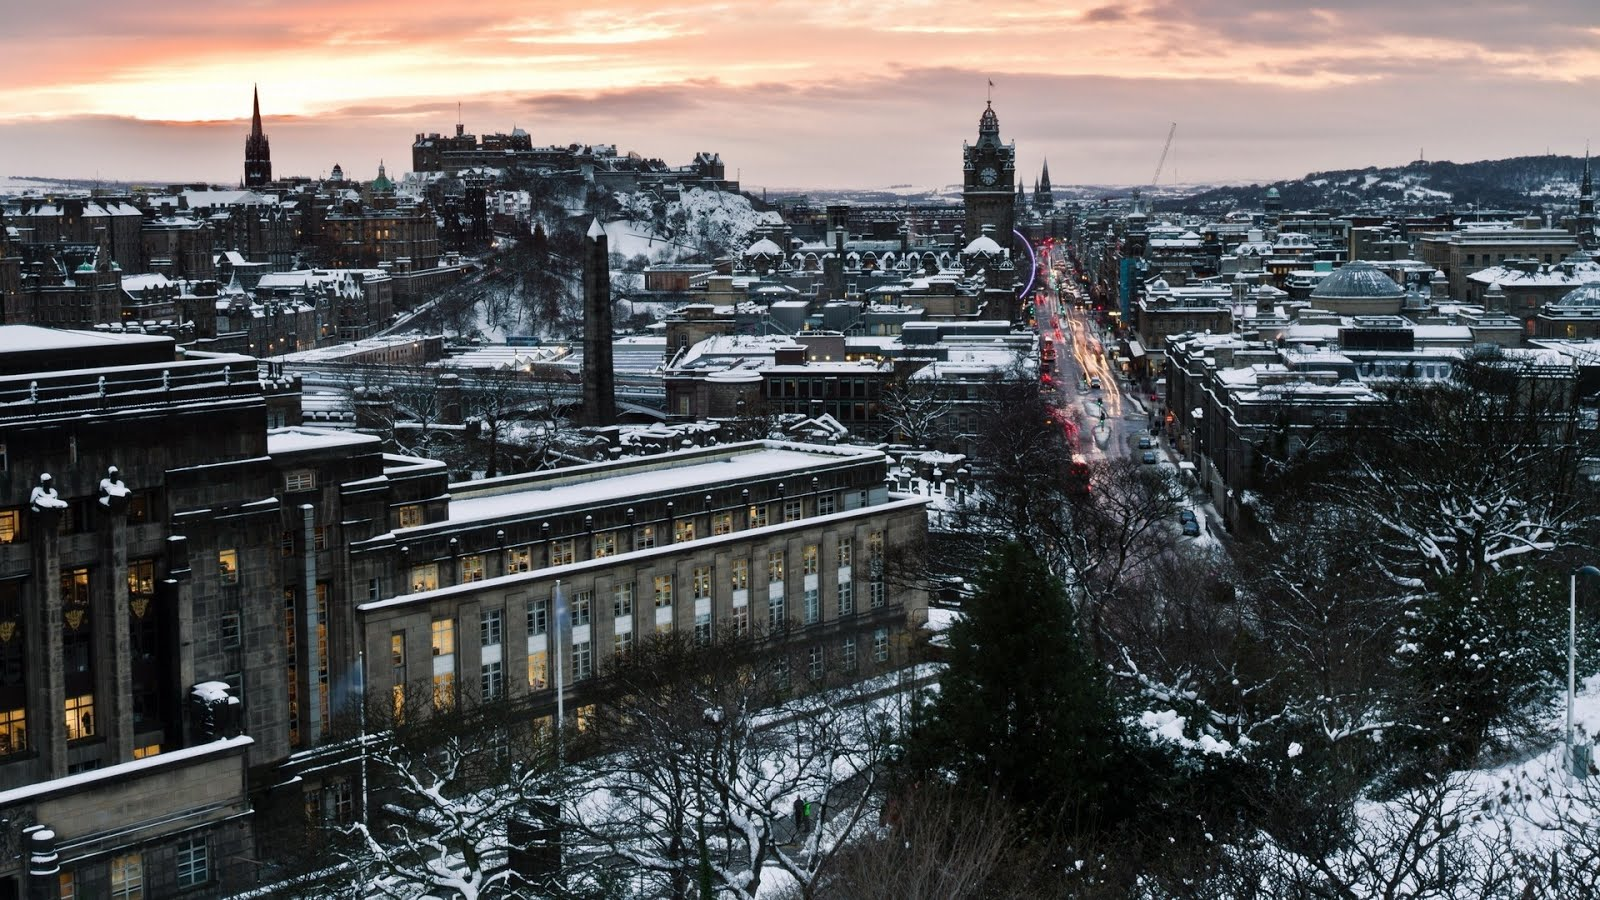 Edinburgh, Scotland gripped in the icy embrace of Cailleach Bhèara, the Hag of Winter!